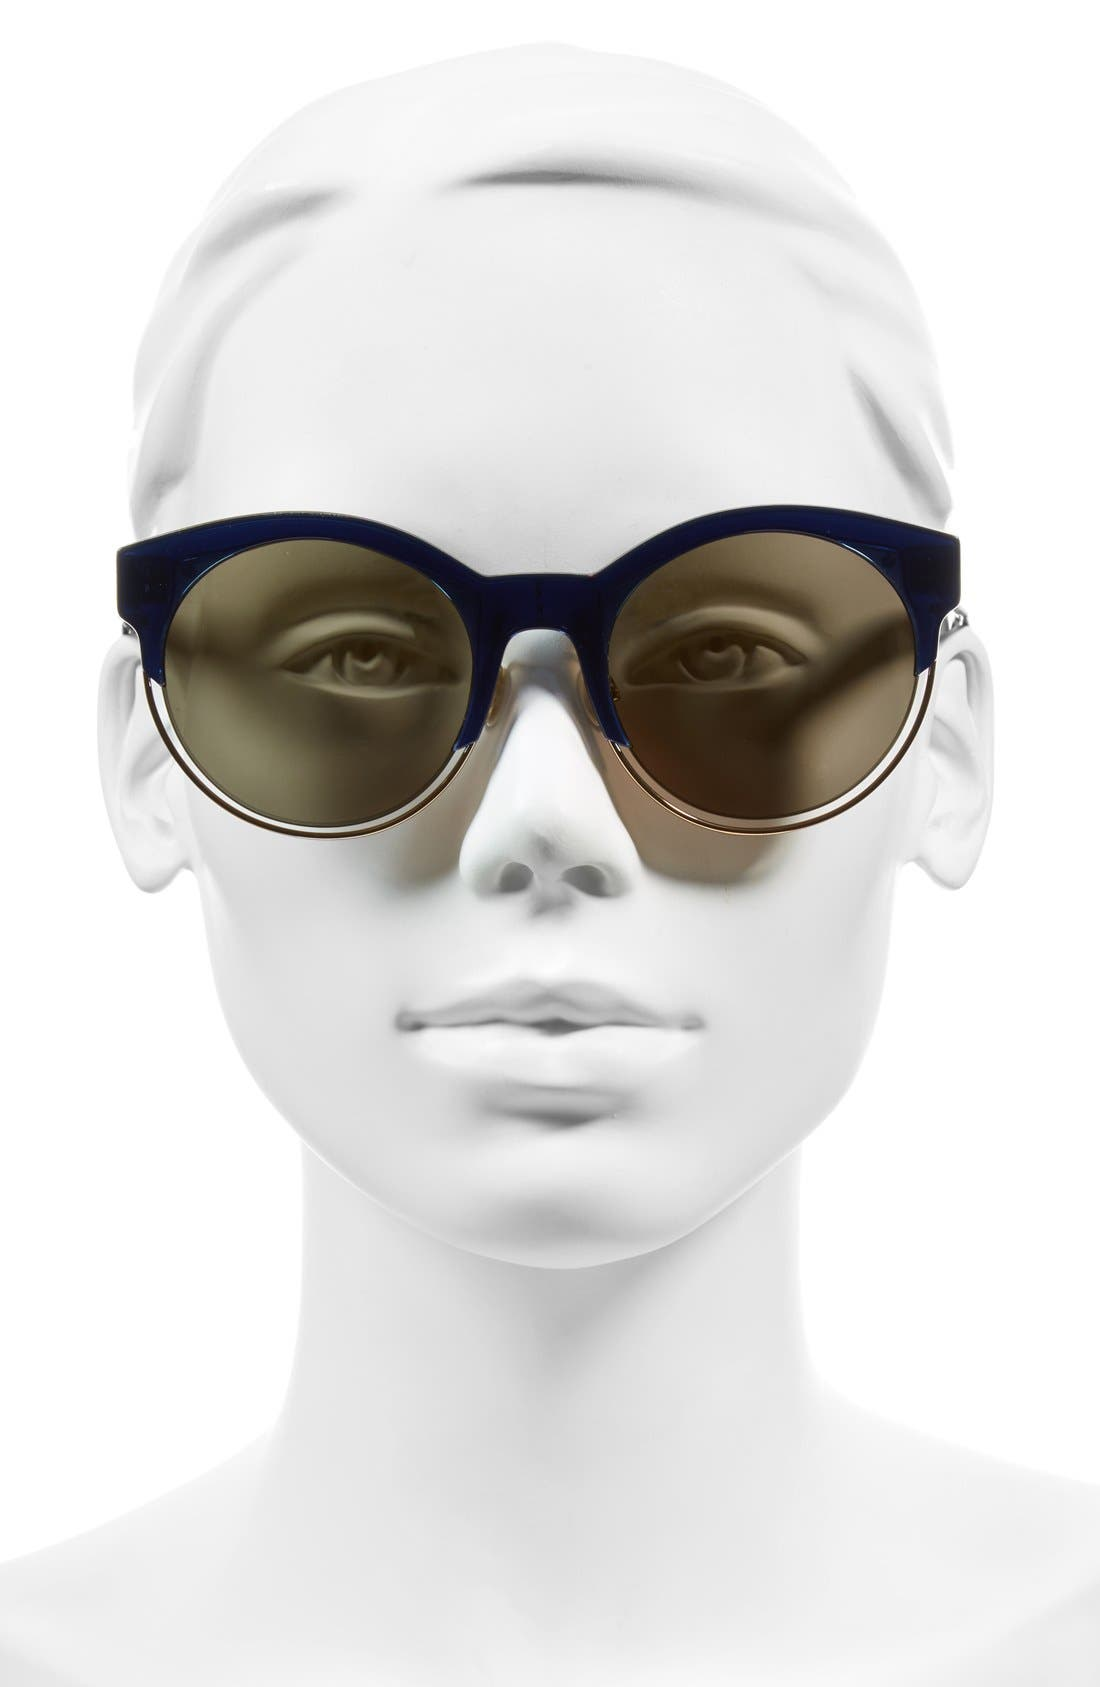 Siderall 1 53mm Round Sunglasses,                             Alternate thumbnail 15, color,